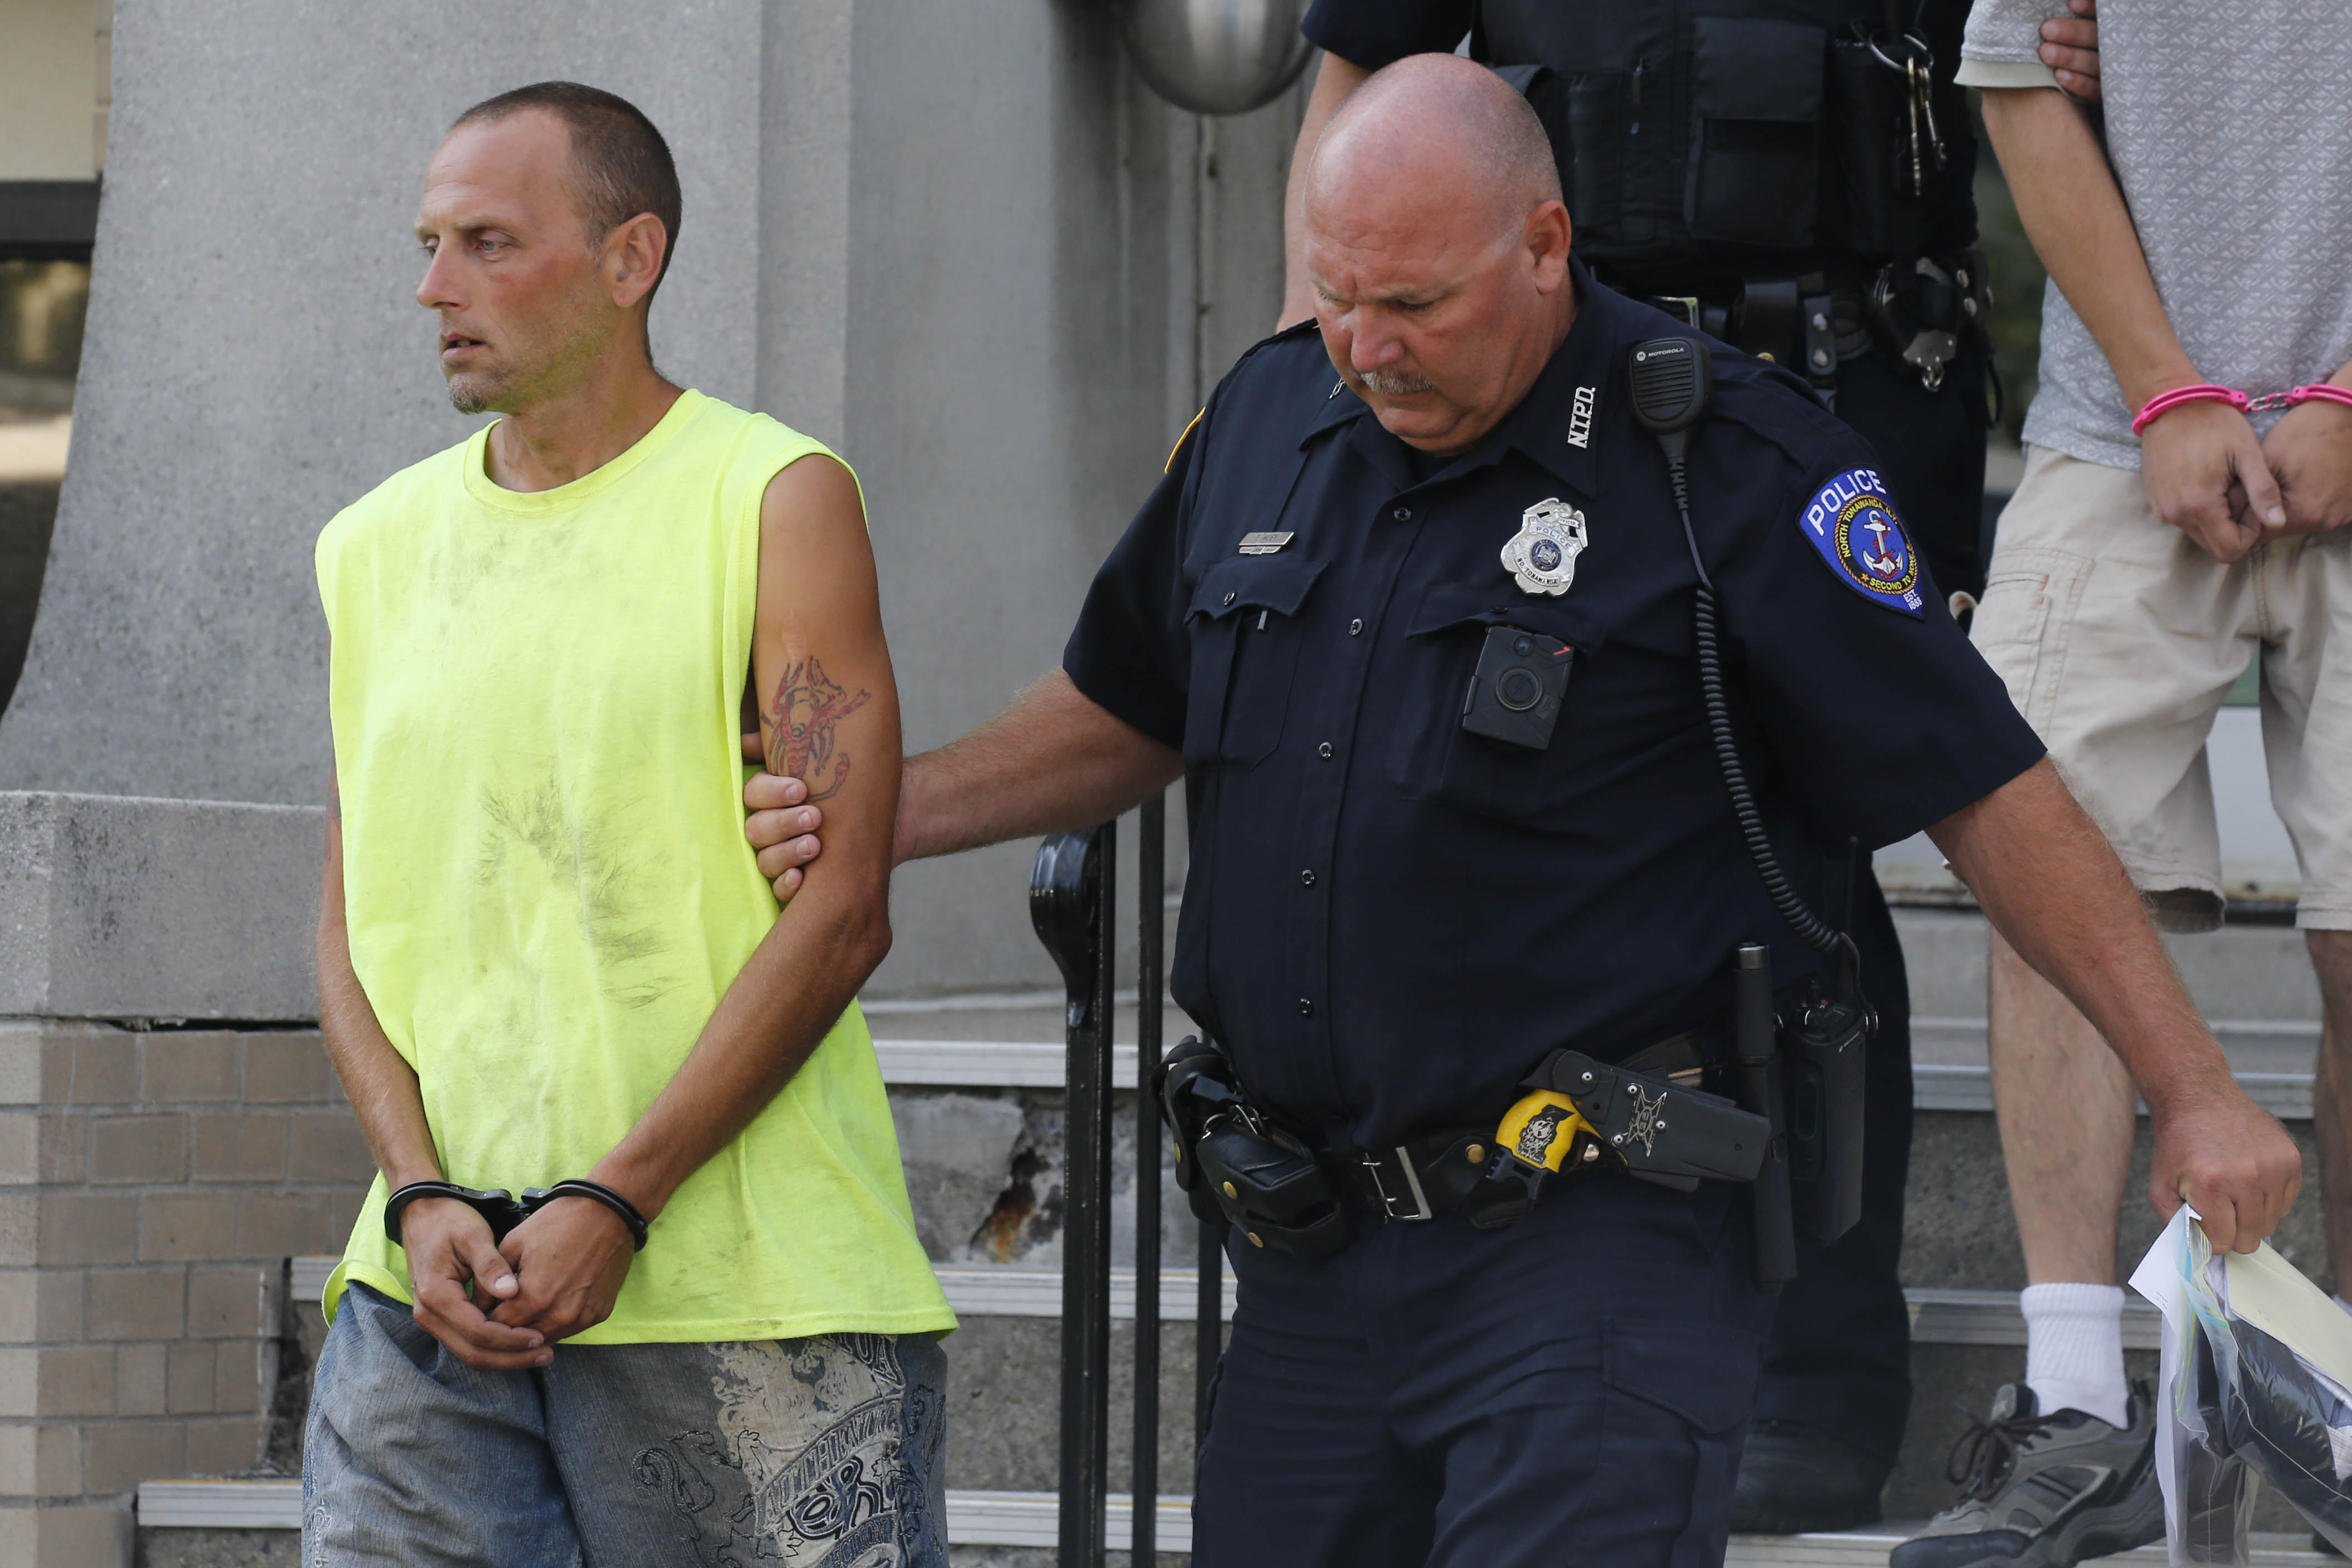 Matthew Jurado, 39, is led out of the North Tonawanda Police Station by an officer on Friday, Aug. 5, 2016 after being arraigned for intentionally starting a fire in the home of his neighbor, a black firefighter who had just received racist threats. (Photo by Derek Gee)